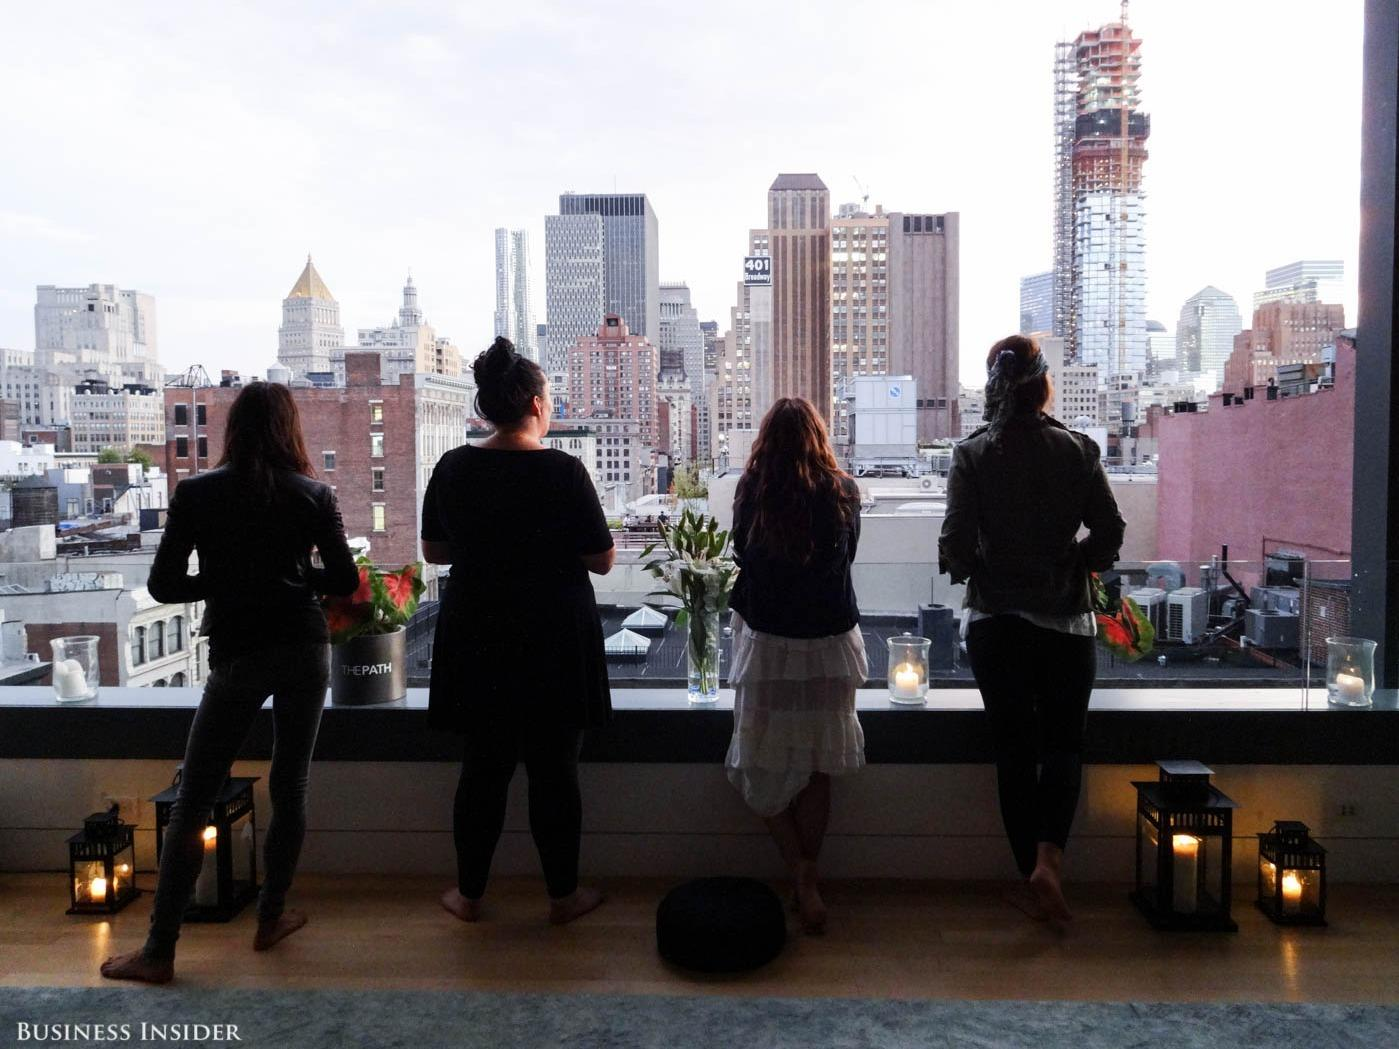 Rich New Yorkers are opening their gorgeous homes to stressed-out professionals searching for peace